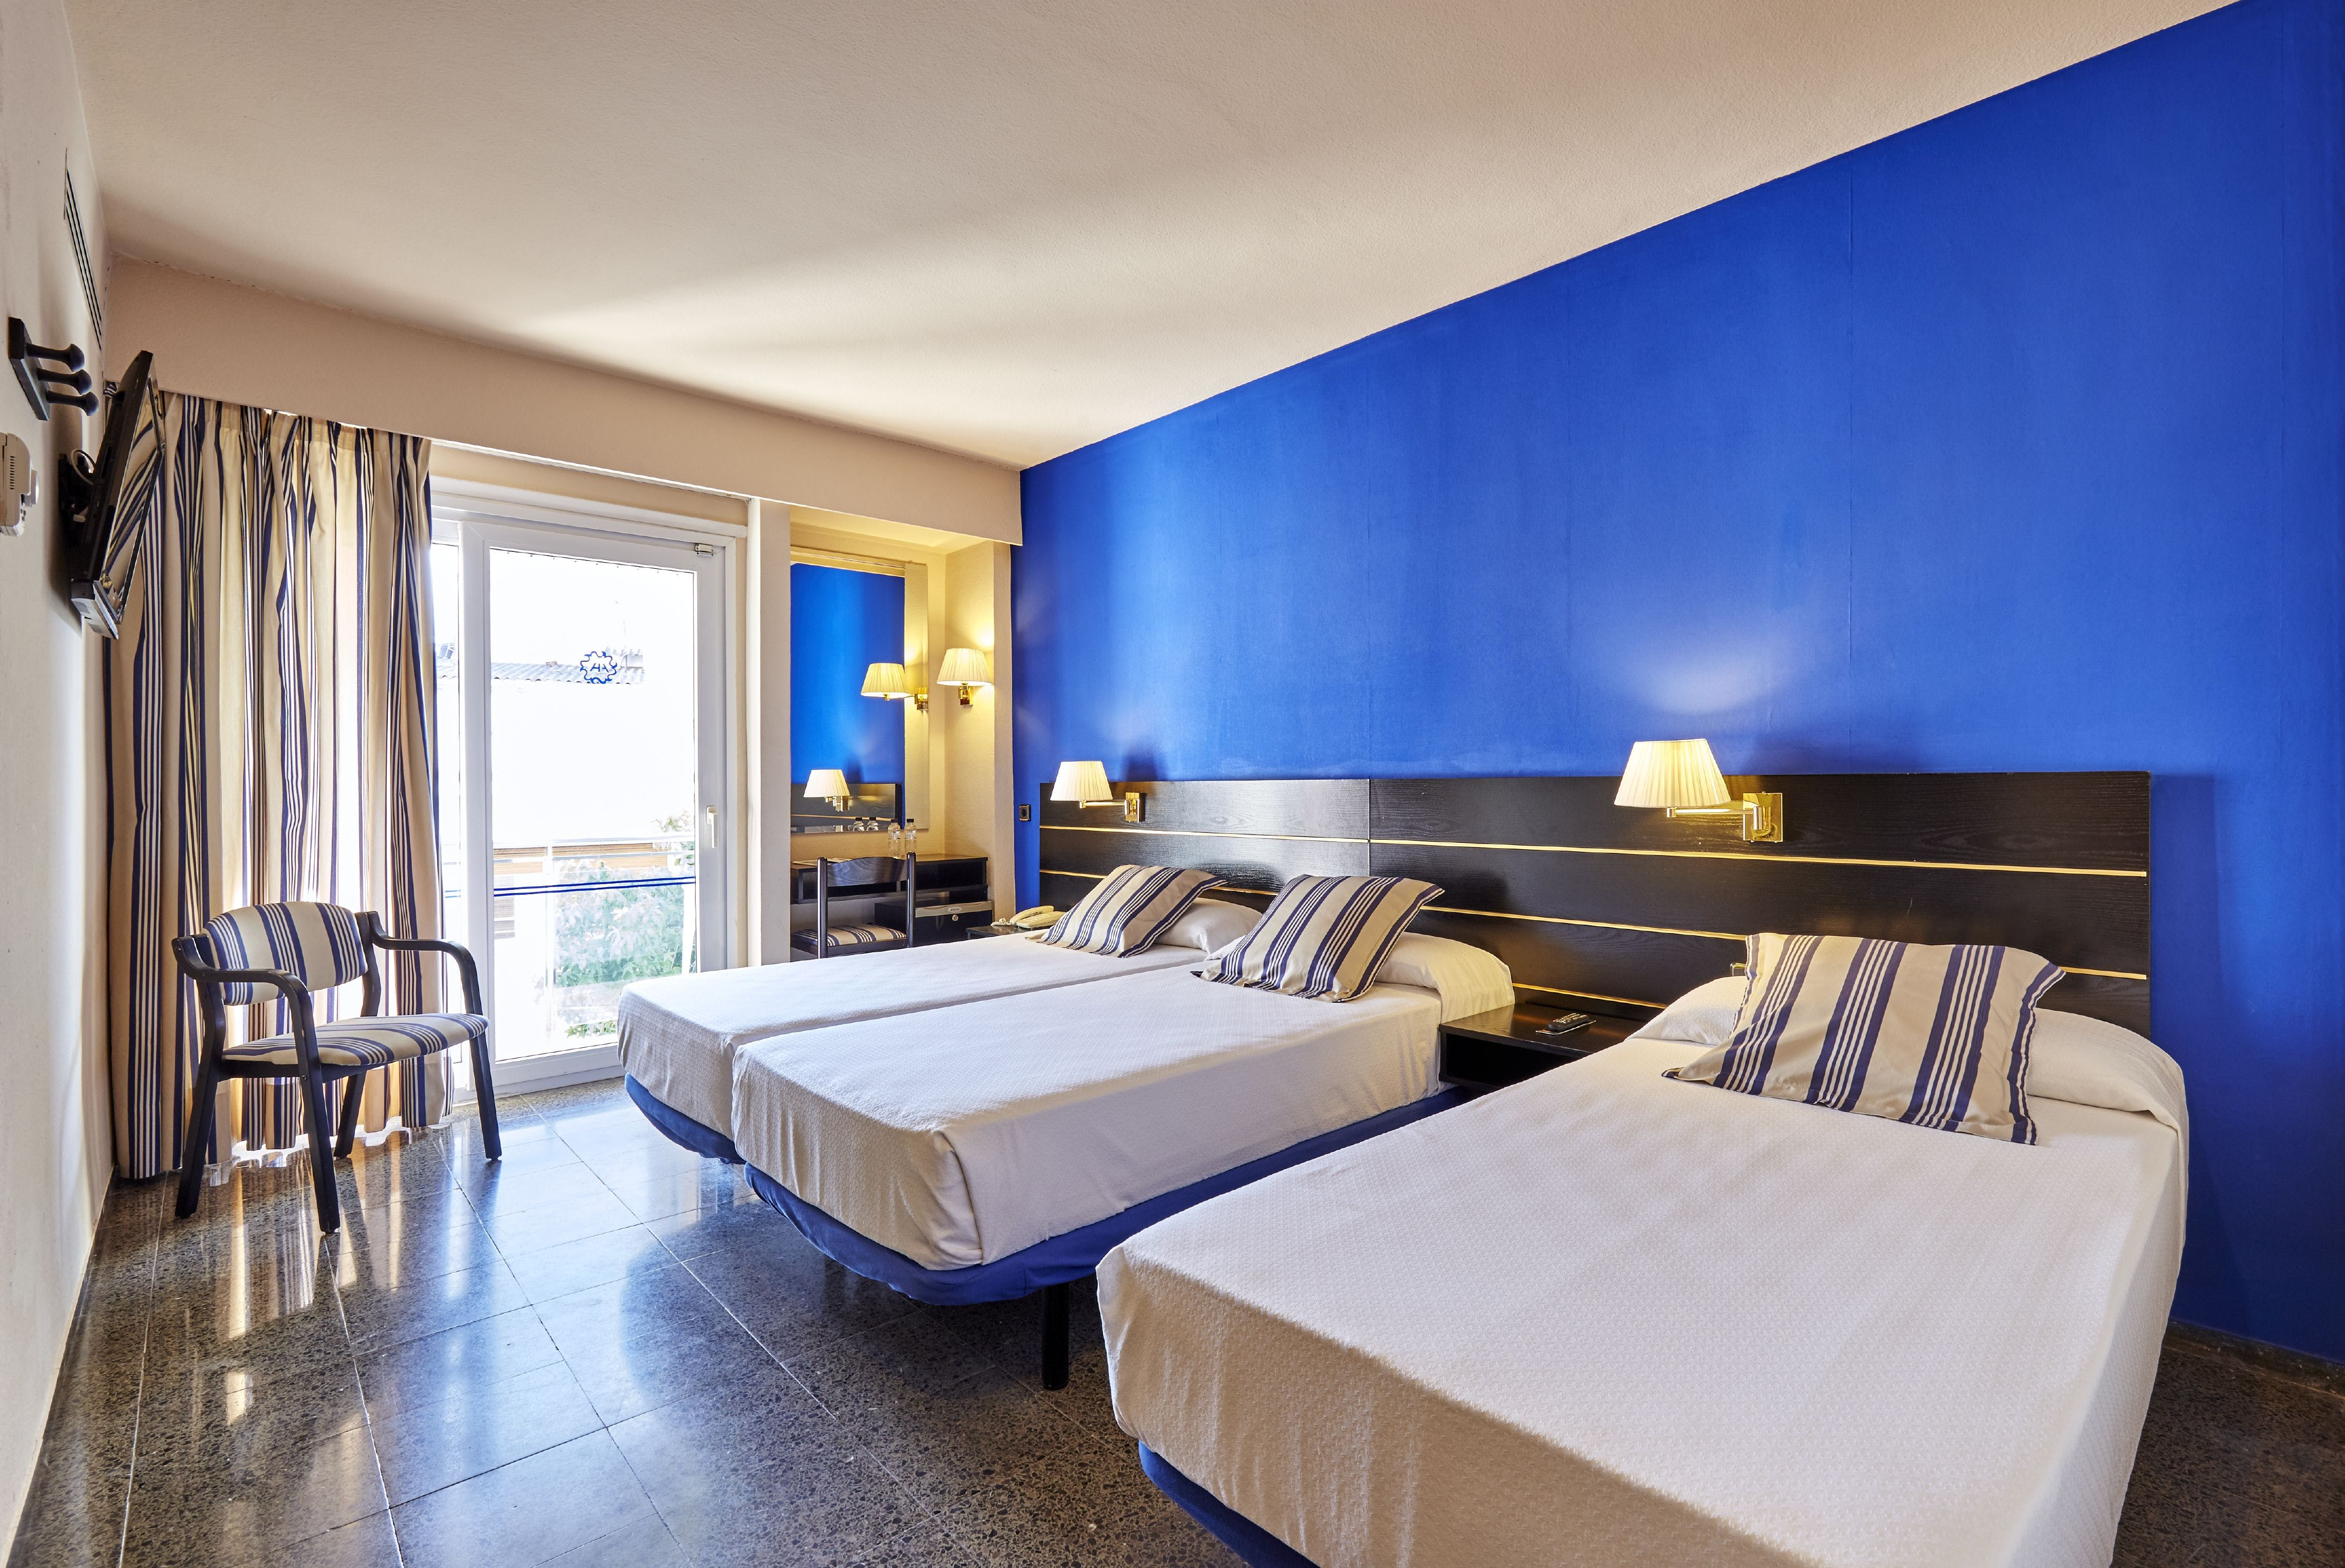 Surface Minimum Chambre Bebe standard triple room (2 adults + 1 child) | hotel anabel